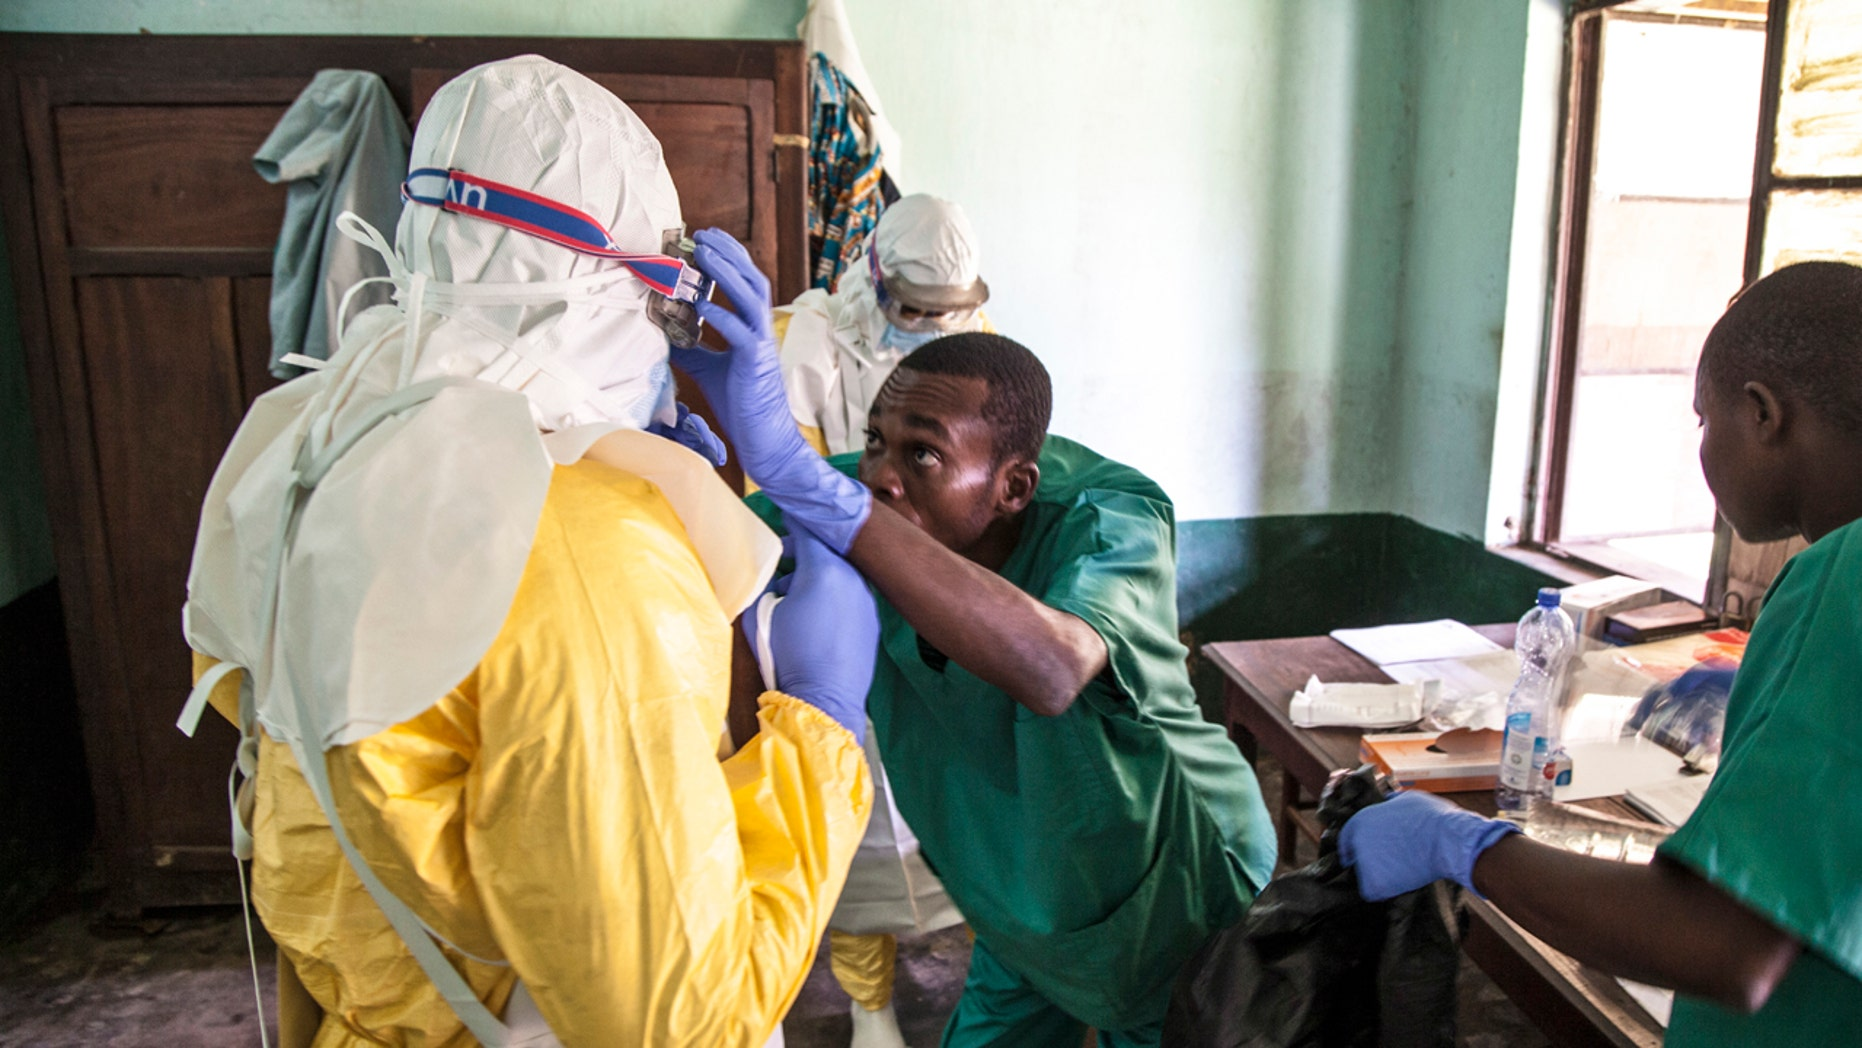 In this photo taken Saturday, May 12, 2018, health workers don protective clothing as they prepare to attend to patients in the isolation ward to diagnose and treat suspected Ebola patients, at Bikoro Hospital in Bikoro, the rural area where the Ebola outbreak was announced last week, in Congo.